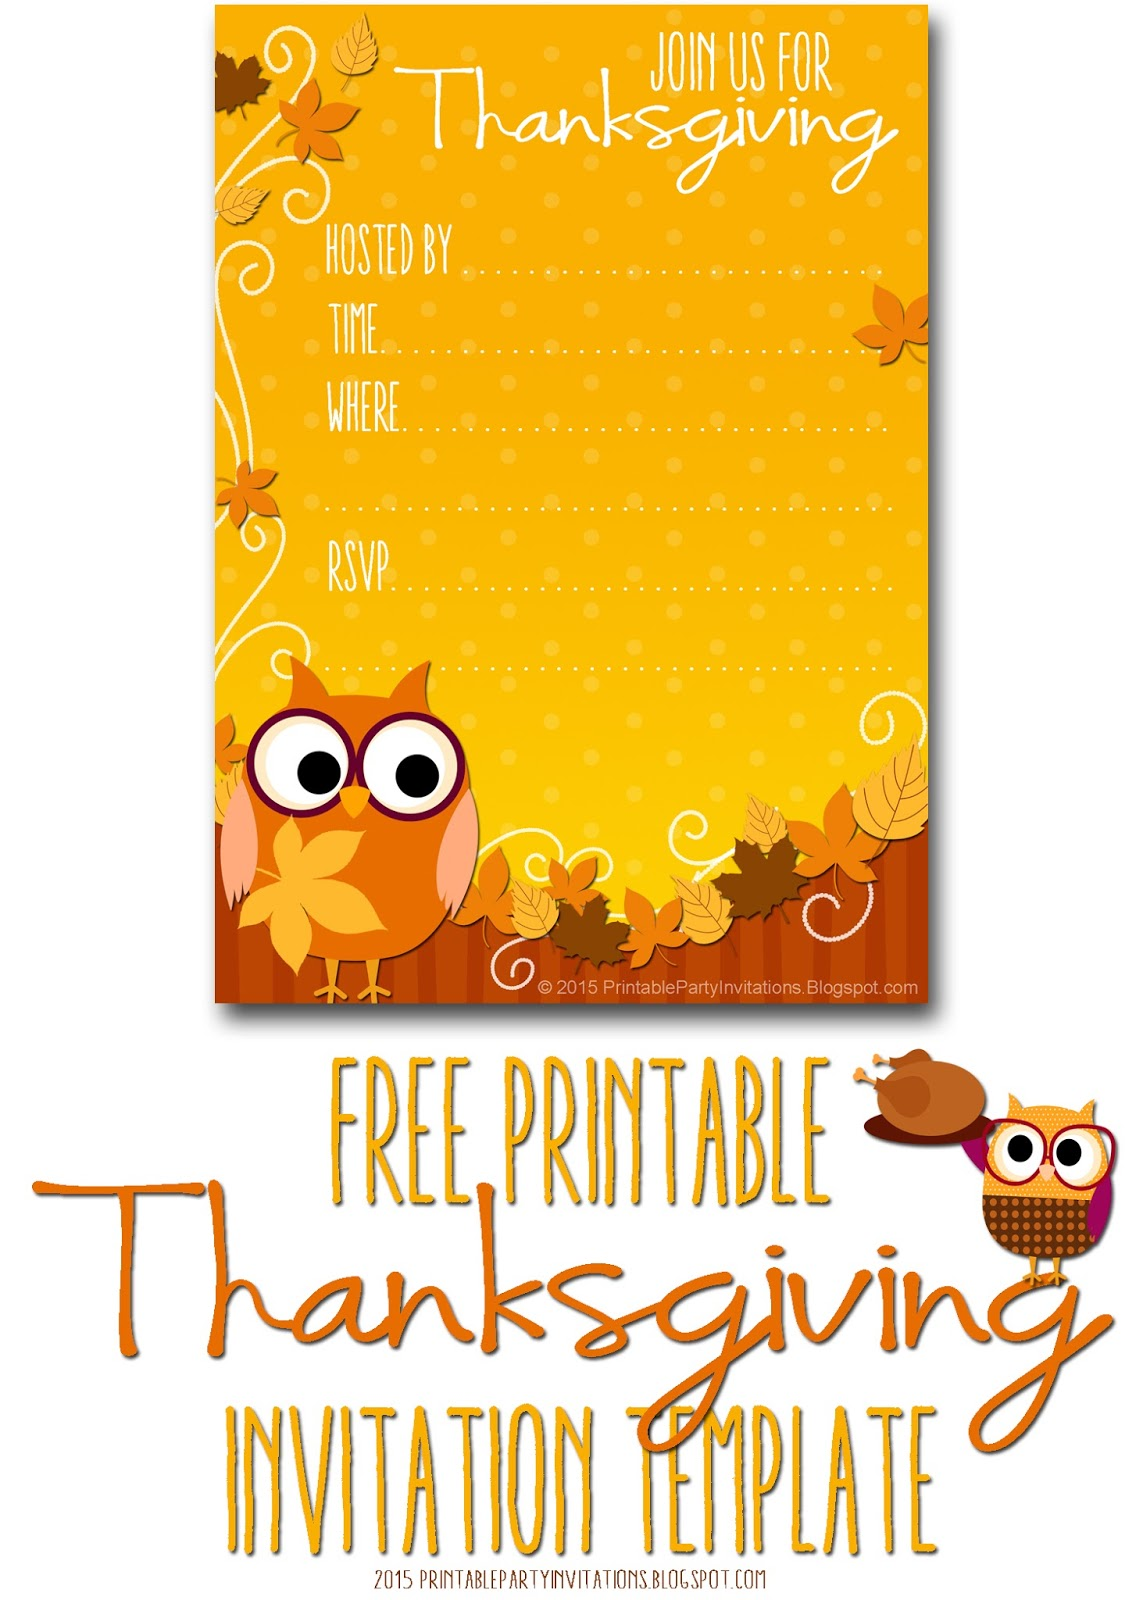 Free printable party invitations thanksgiving invite template owls are both popular right now and perennial symbols of fall so this charming autumn owl invitation template will be sure to charm your potential guests stopboris Gallery